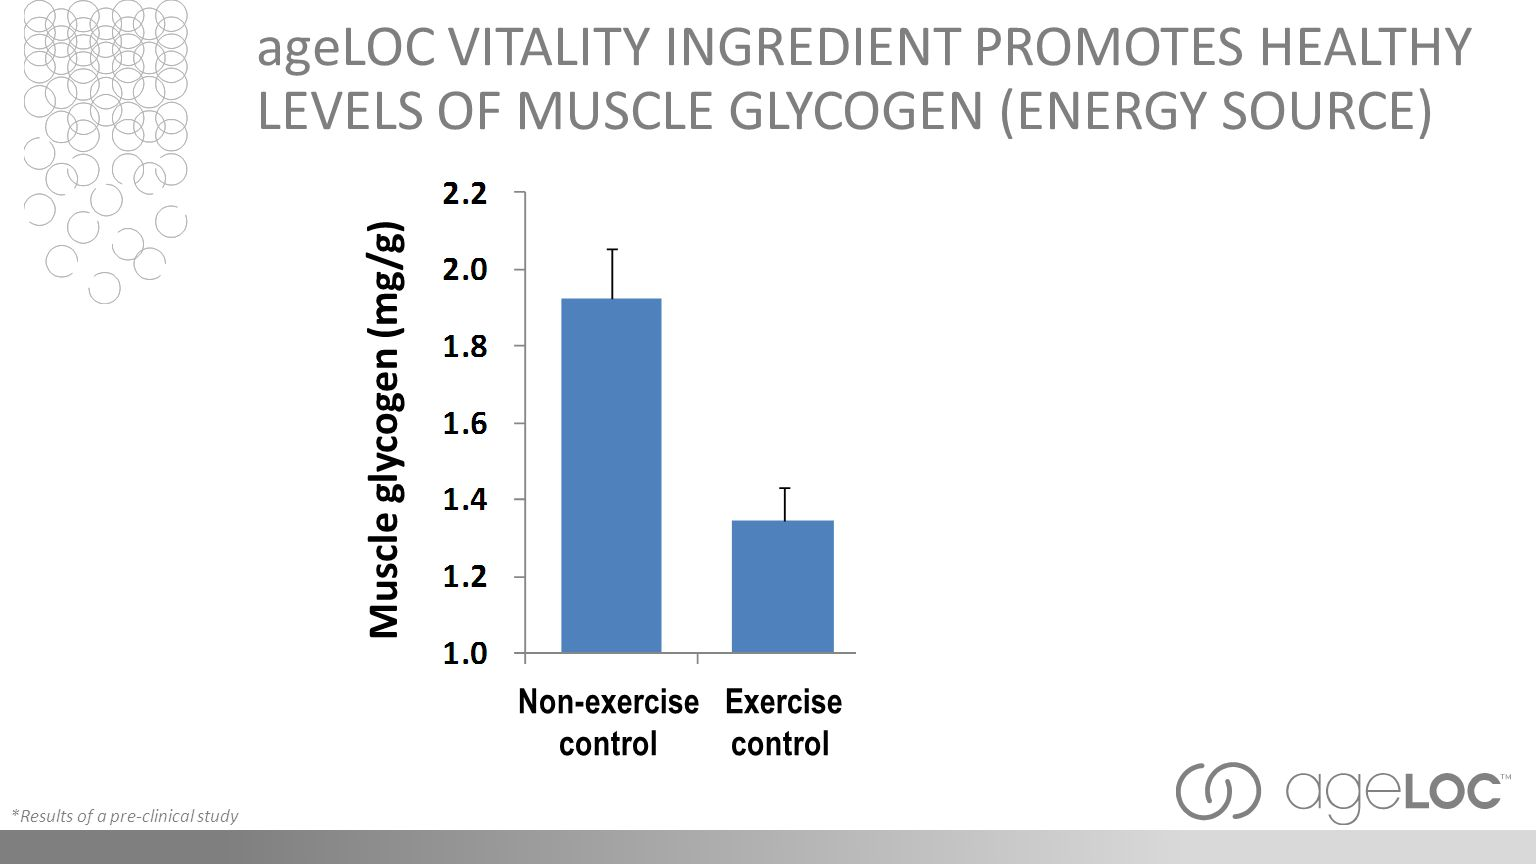 Exercise w/ Vitality ageLOC VITALITY INGREDIENT PROMOTES HEALTHY LEVELS OF MUSCLE GLYCOGEN (ENERGY SOURCE) Muscle glycogen (mg/g) Non-exercise control Exercise control *Results of a pre-clinical study